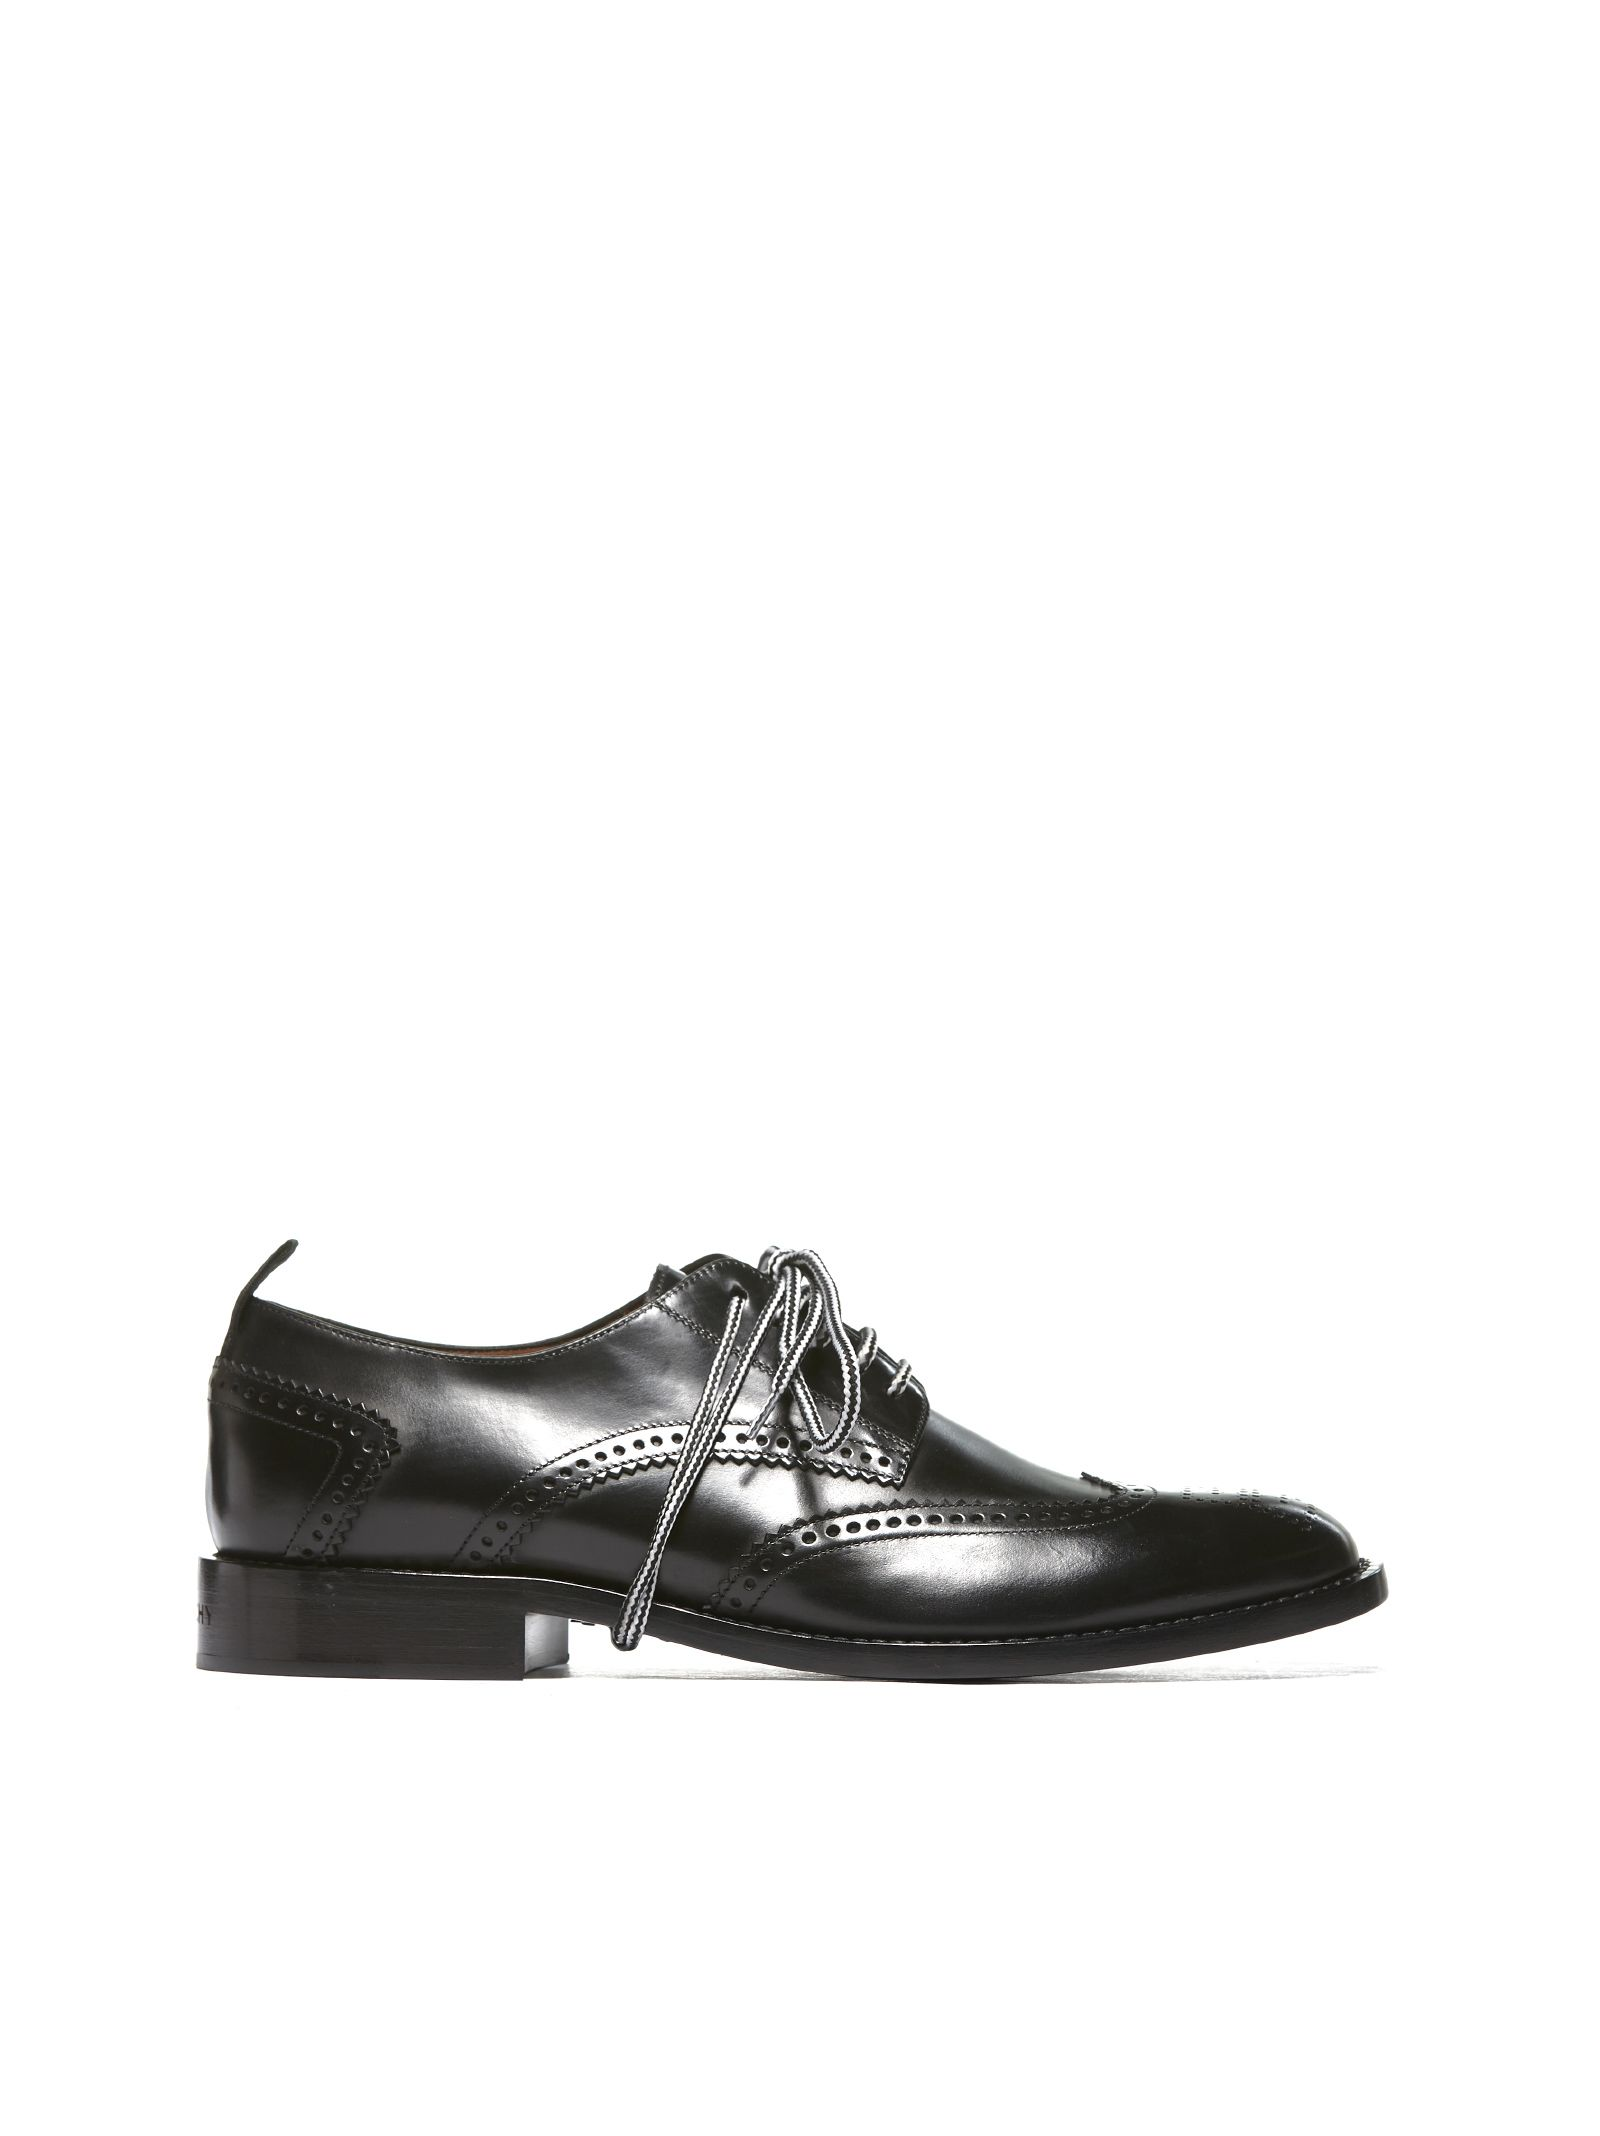 Givenchy Perforated Derby Shoes